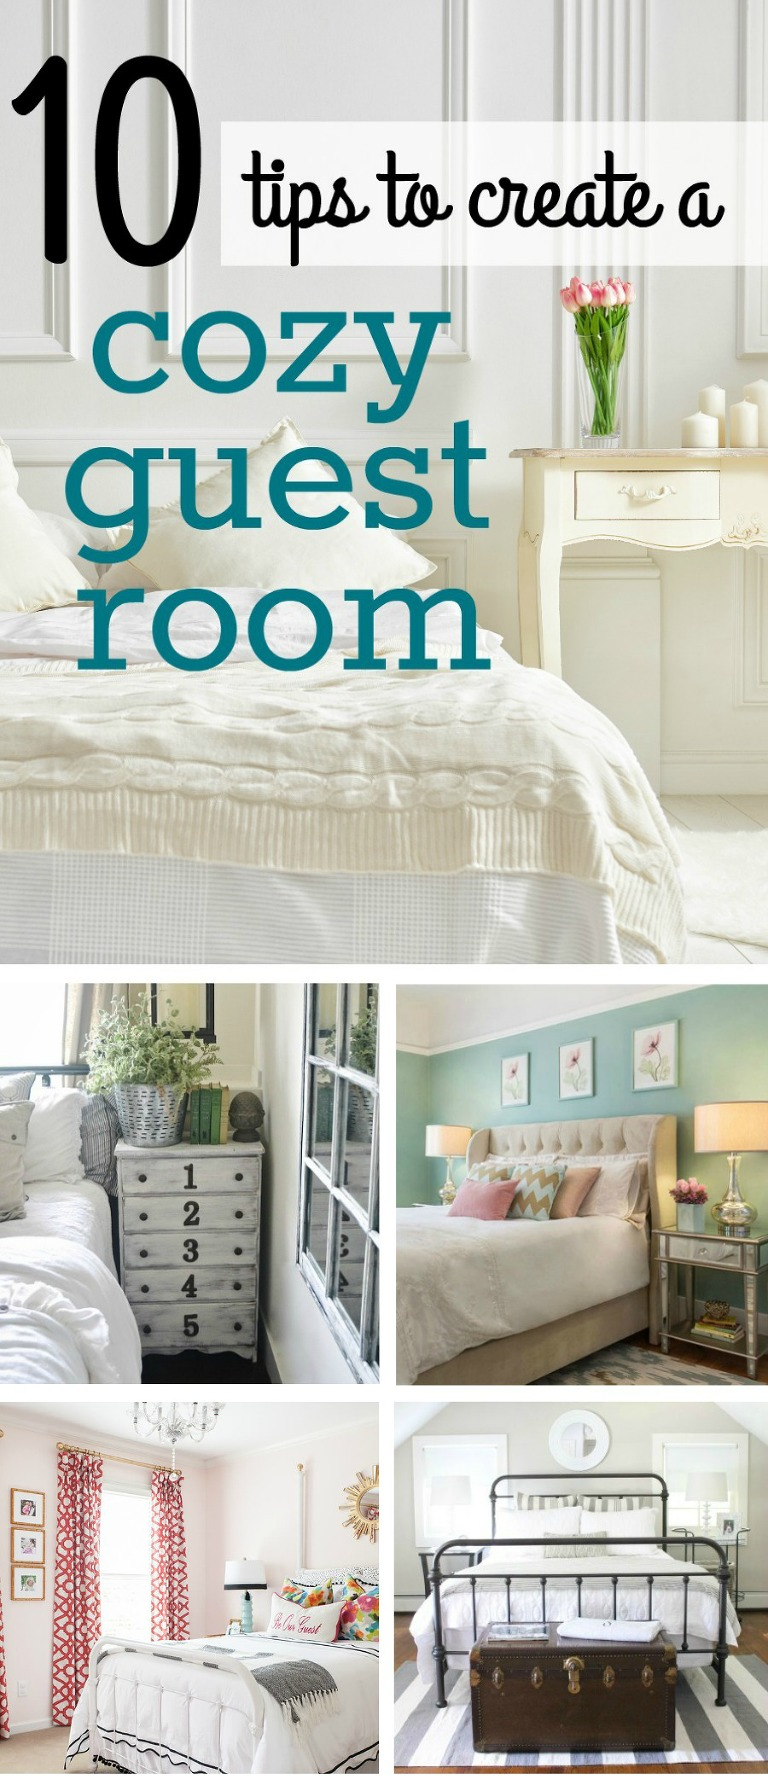 10 tips to creat a cozy guest room